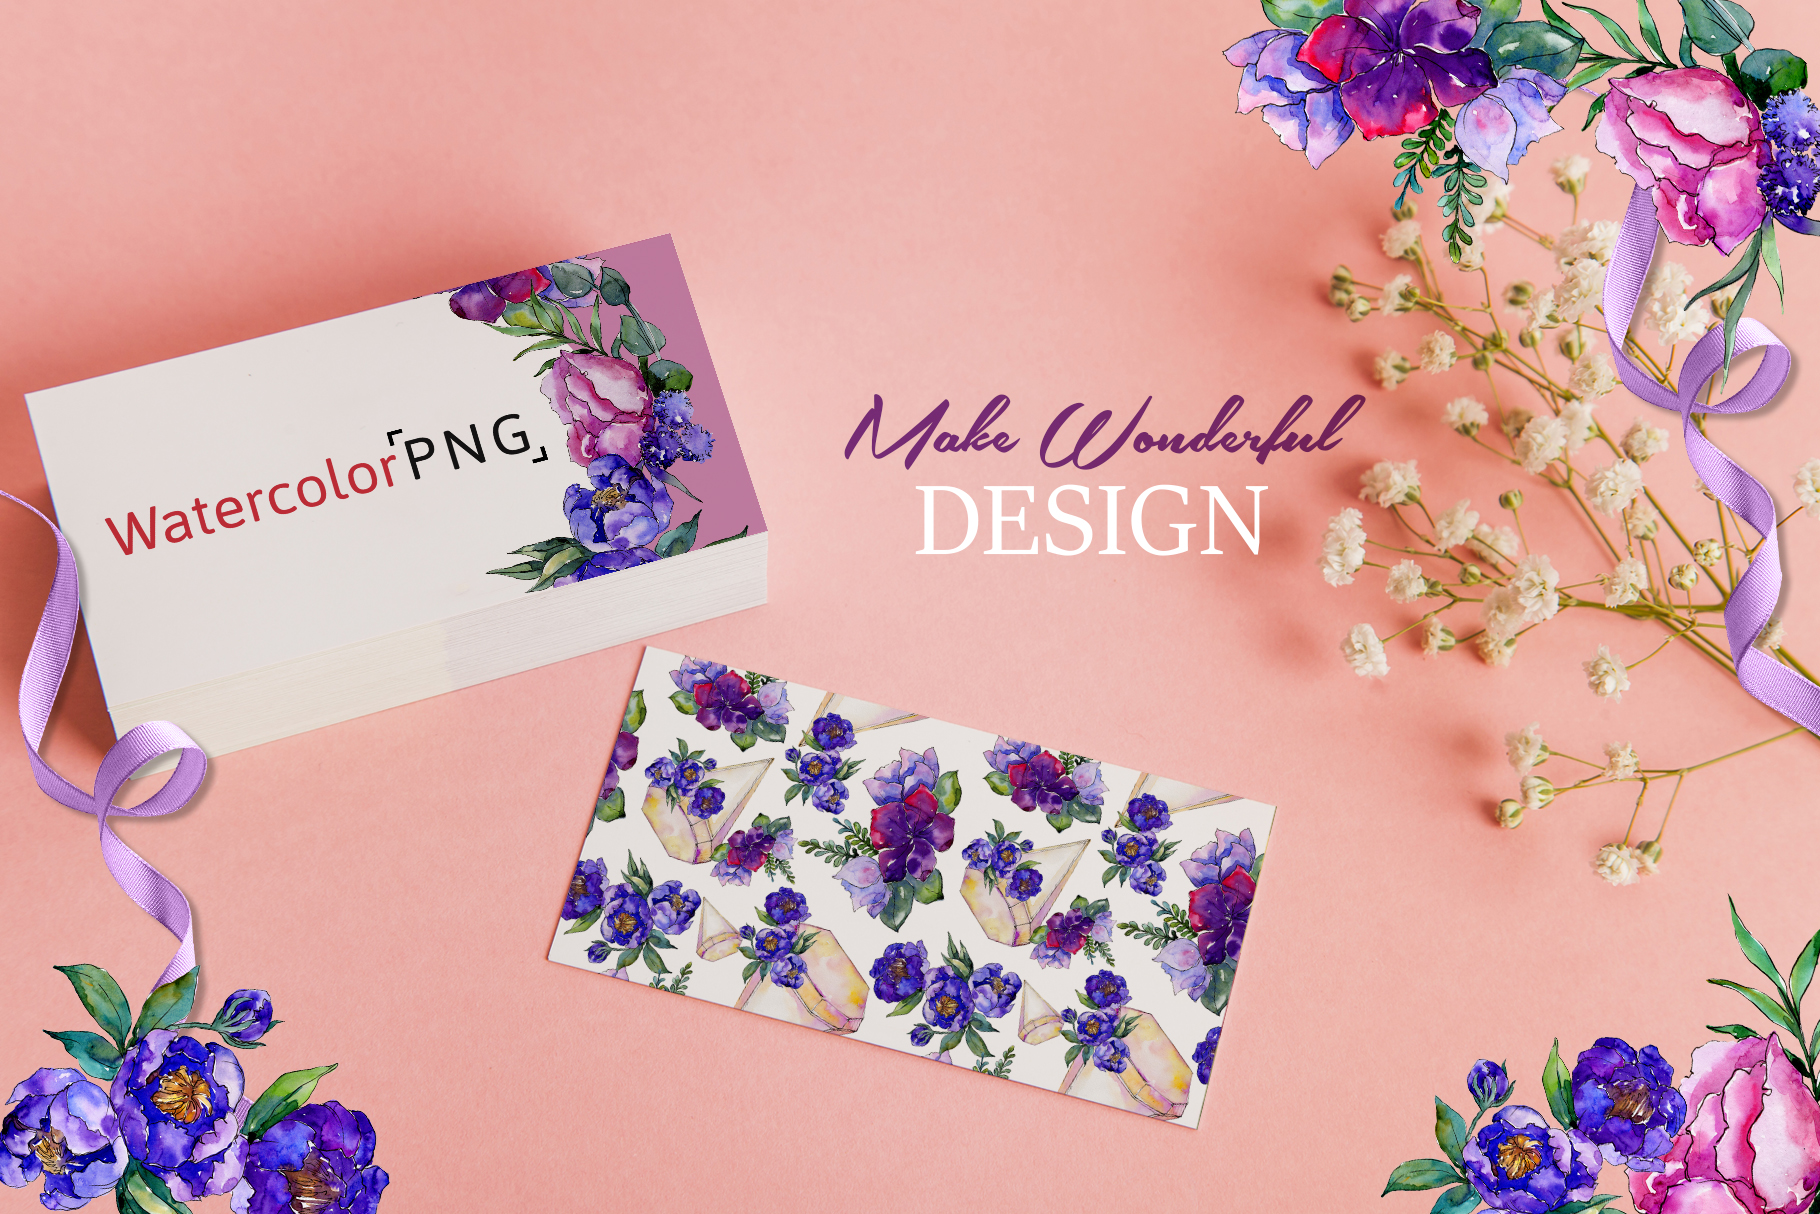 Bouquets of purple flowers Watercolor PNG example image 5